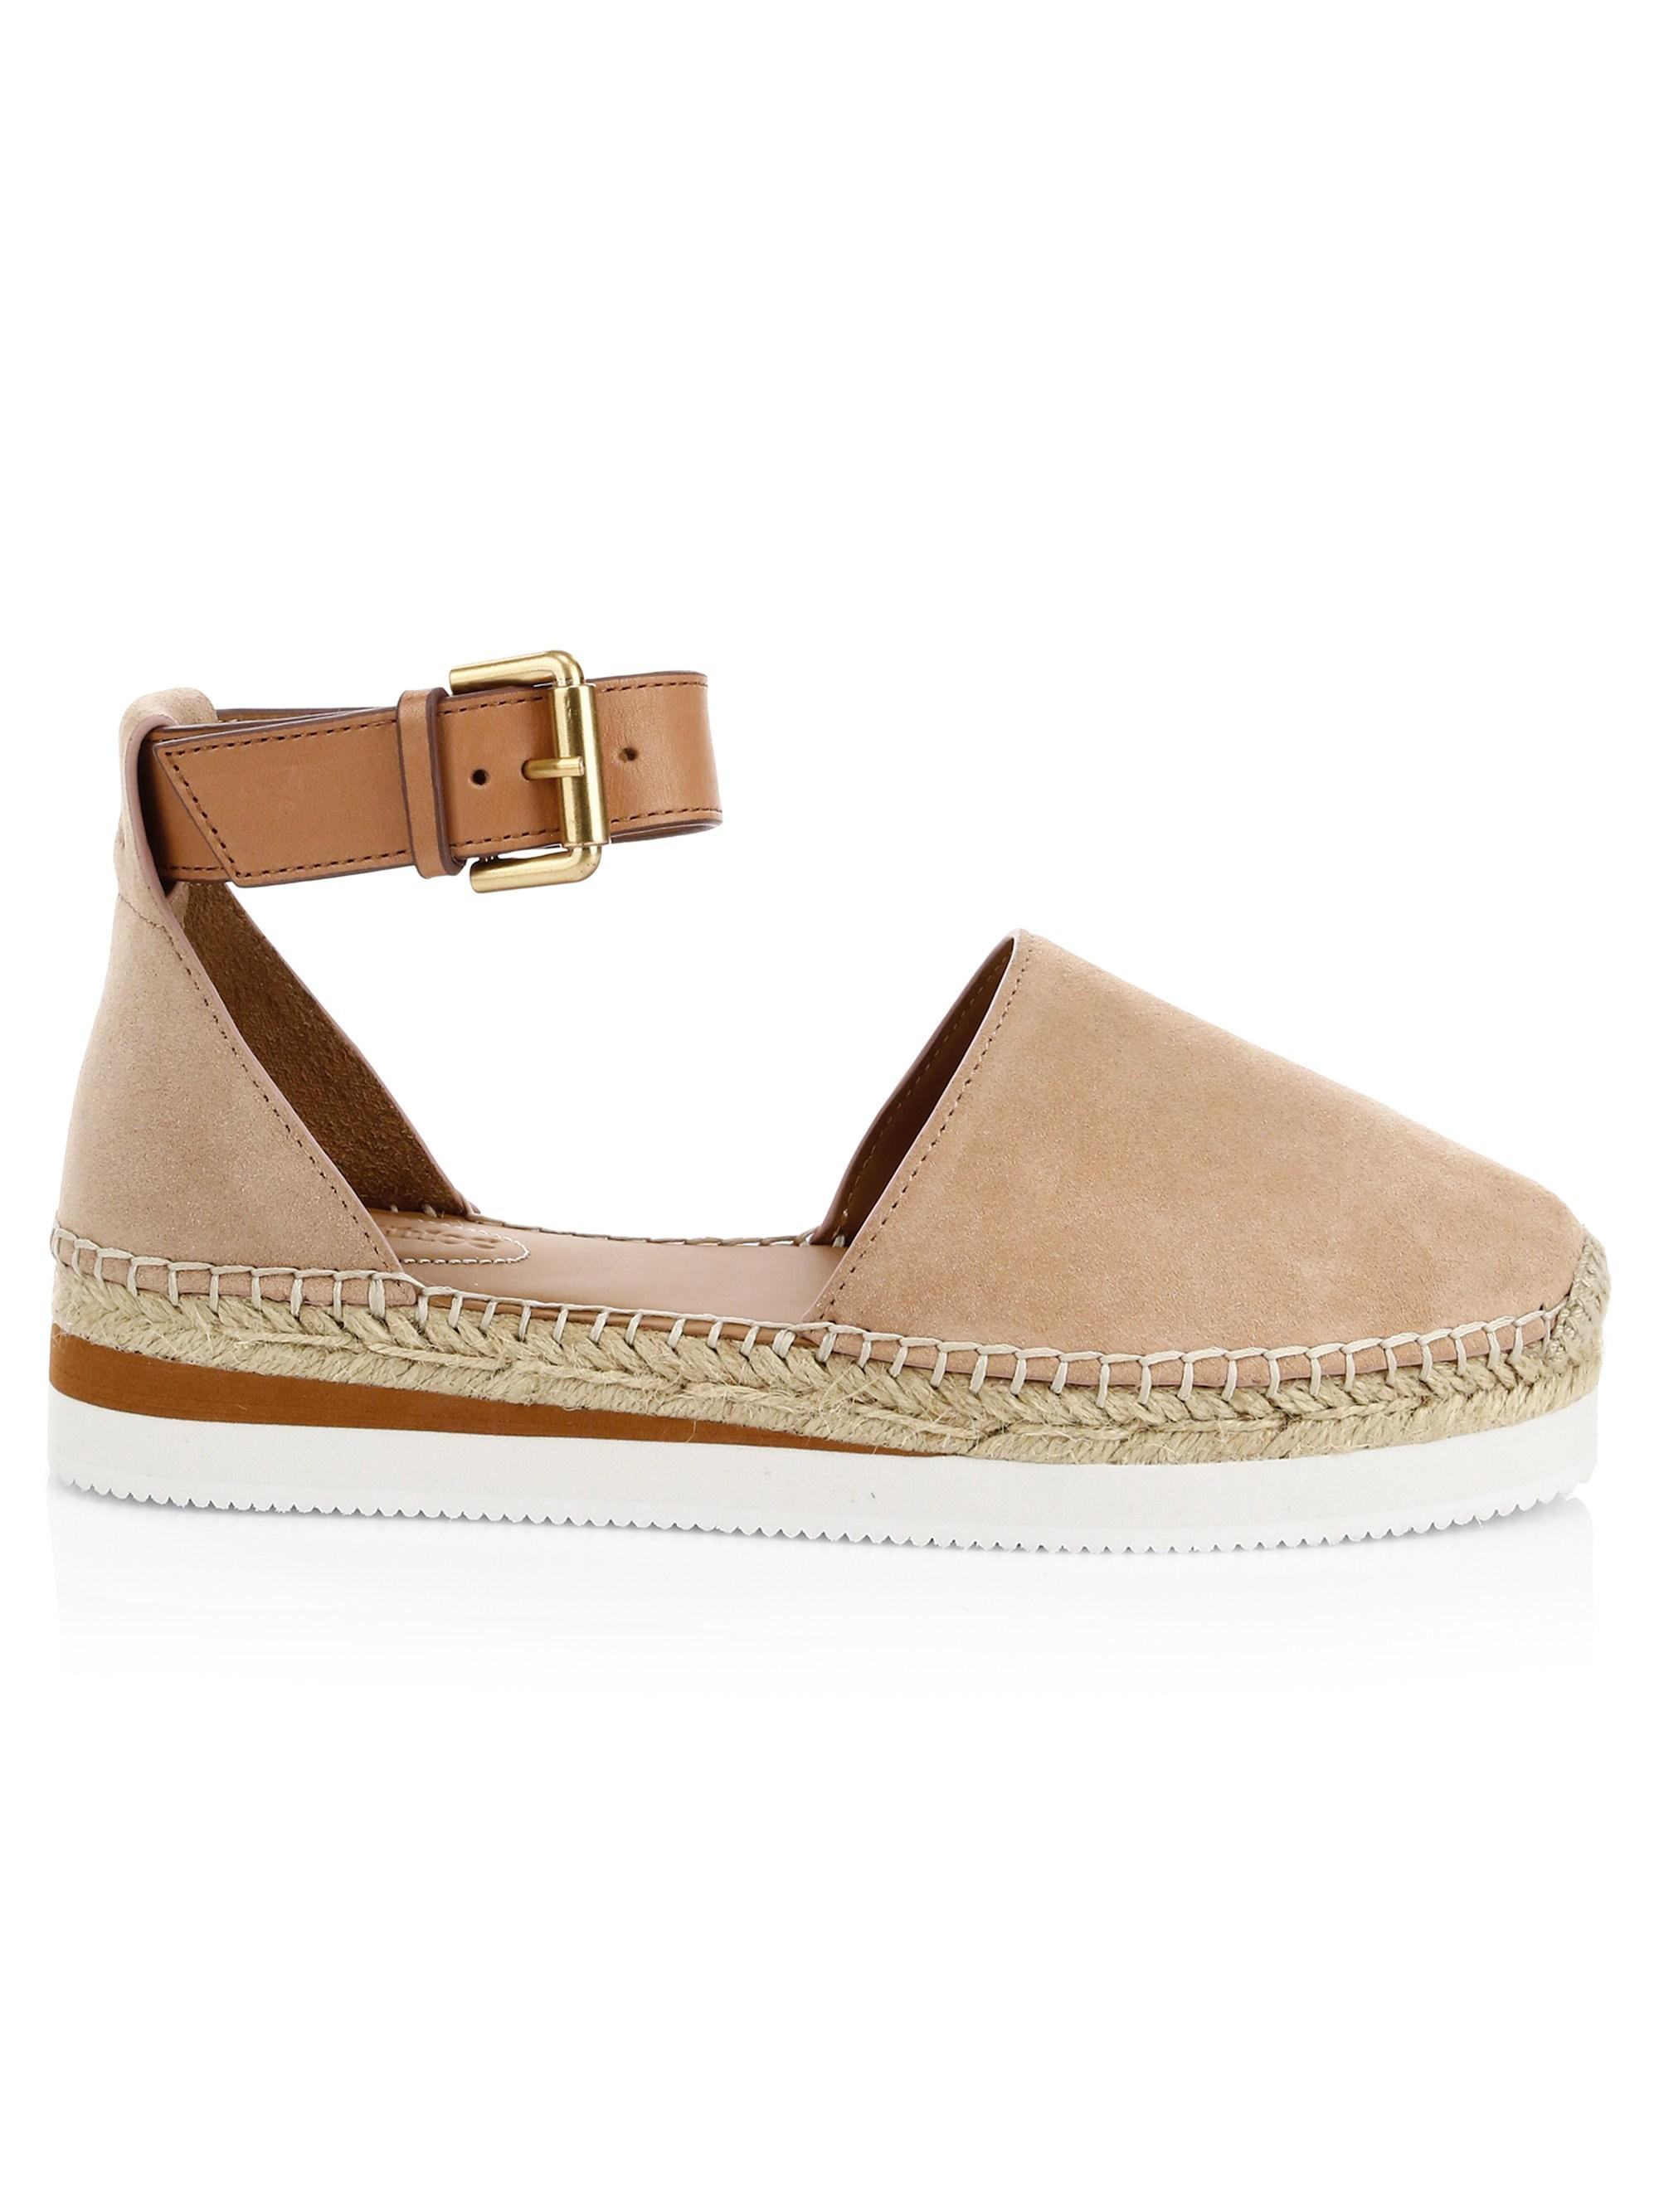 86172b568 See By Chloé Women's Glyn Leather Flat Espadrilles - Pink Multi ...